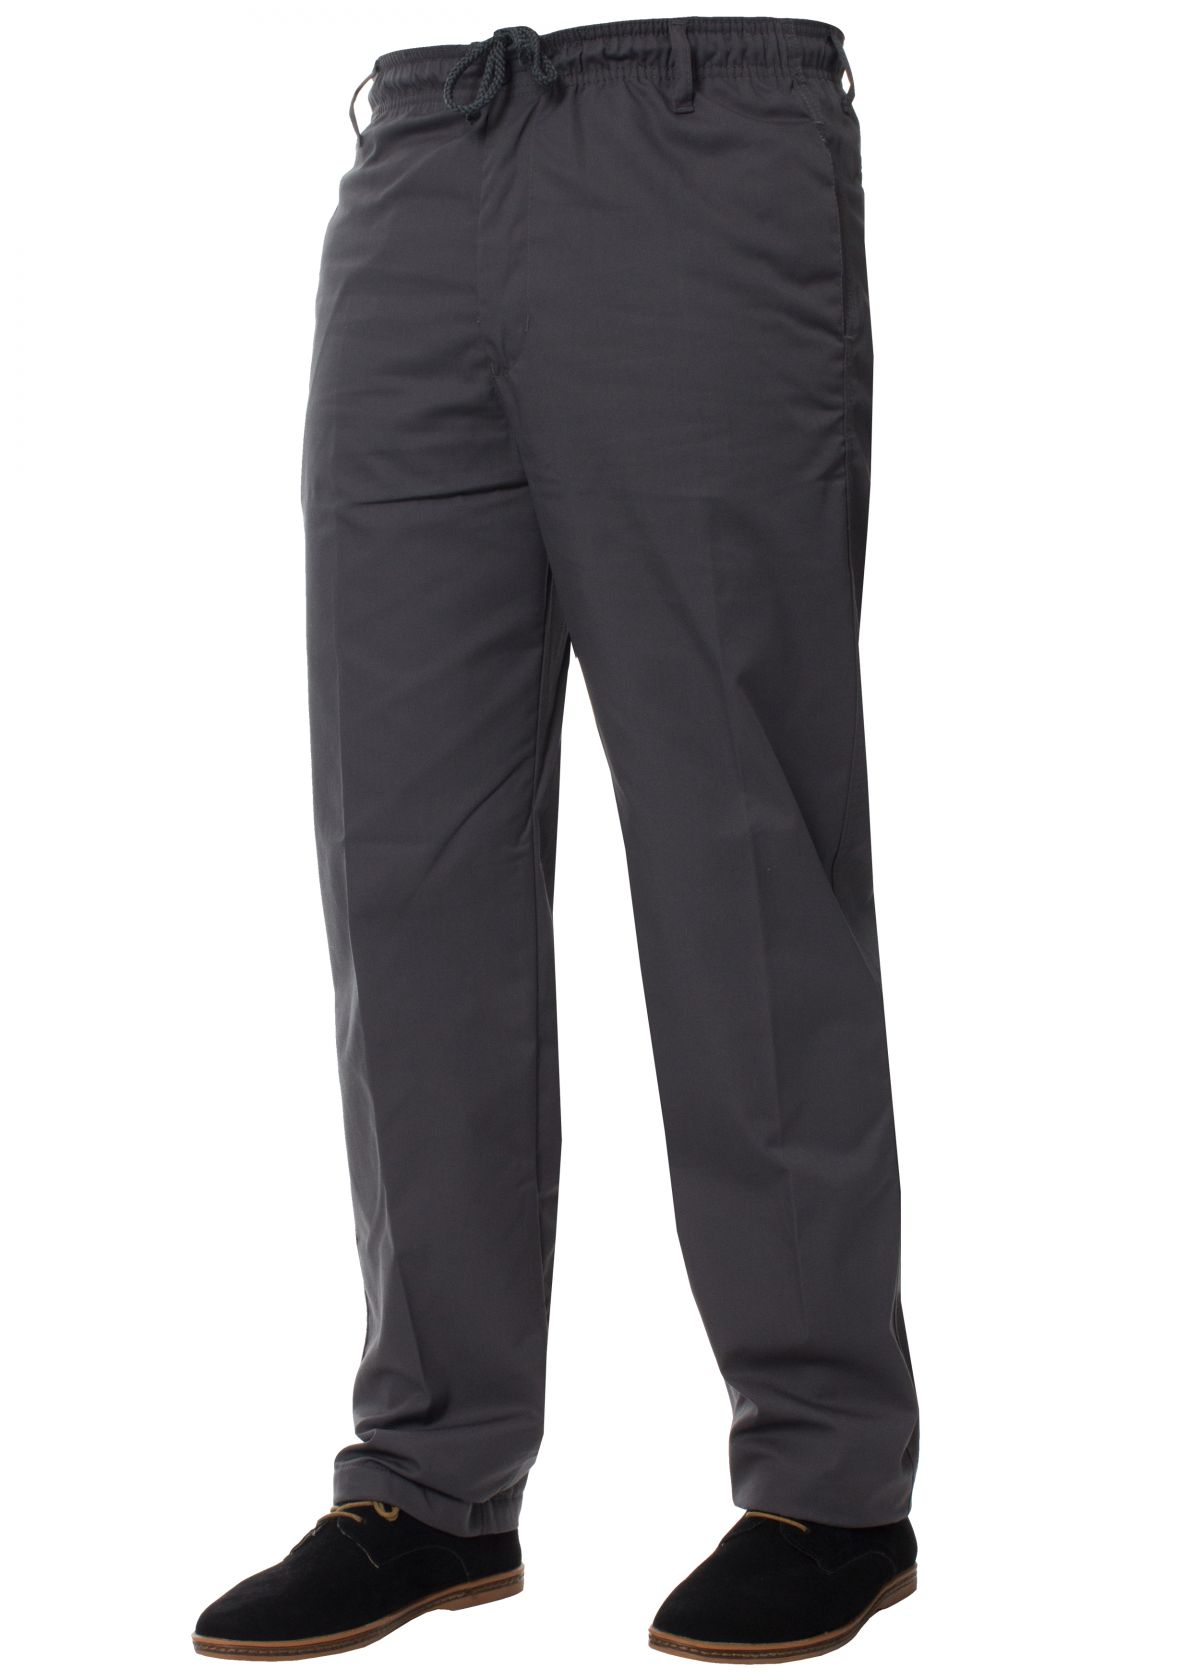 Mens Rugby Elasticated Waist Trousers |  Kruze Designer Menswear